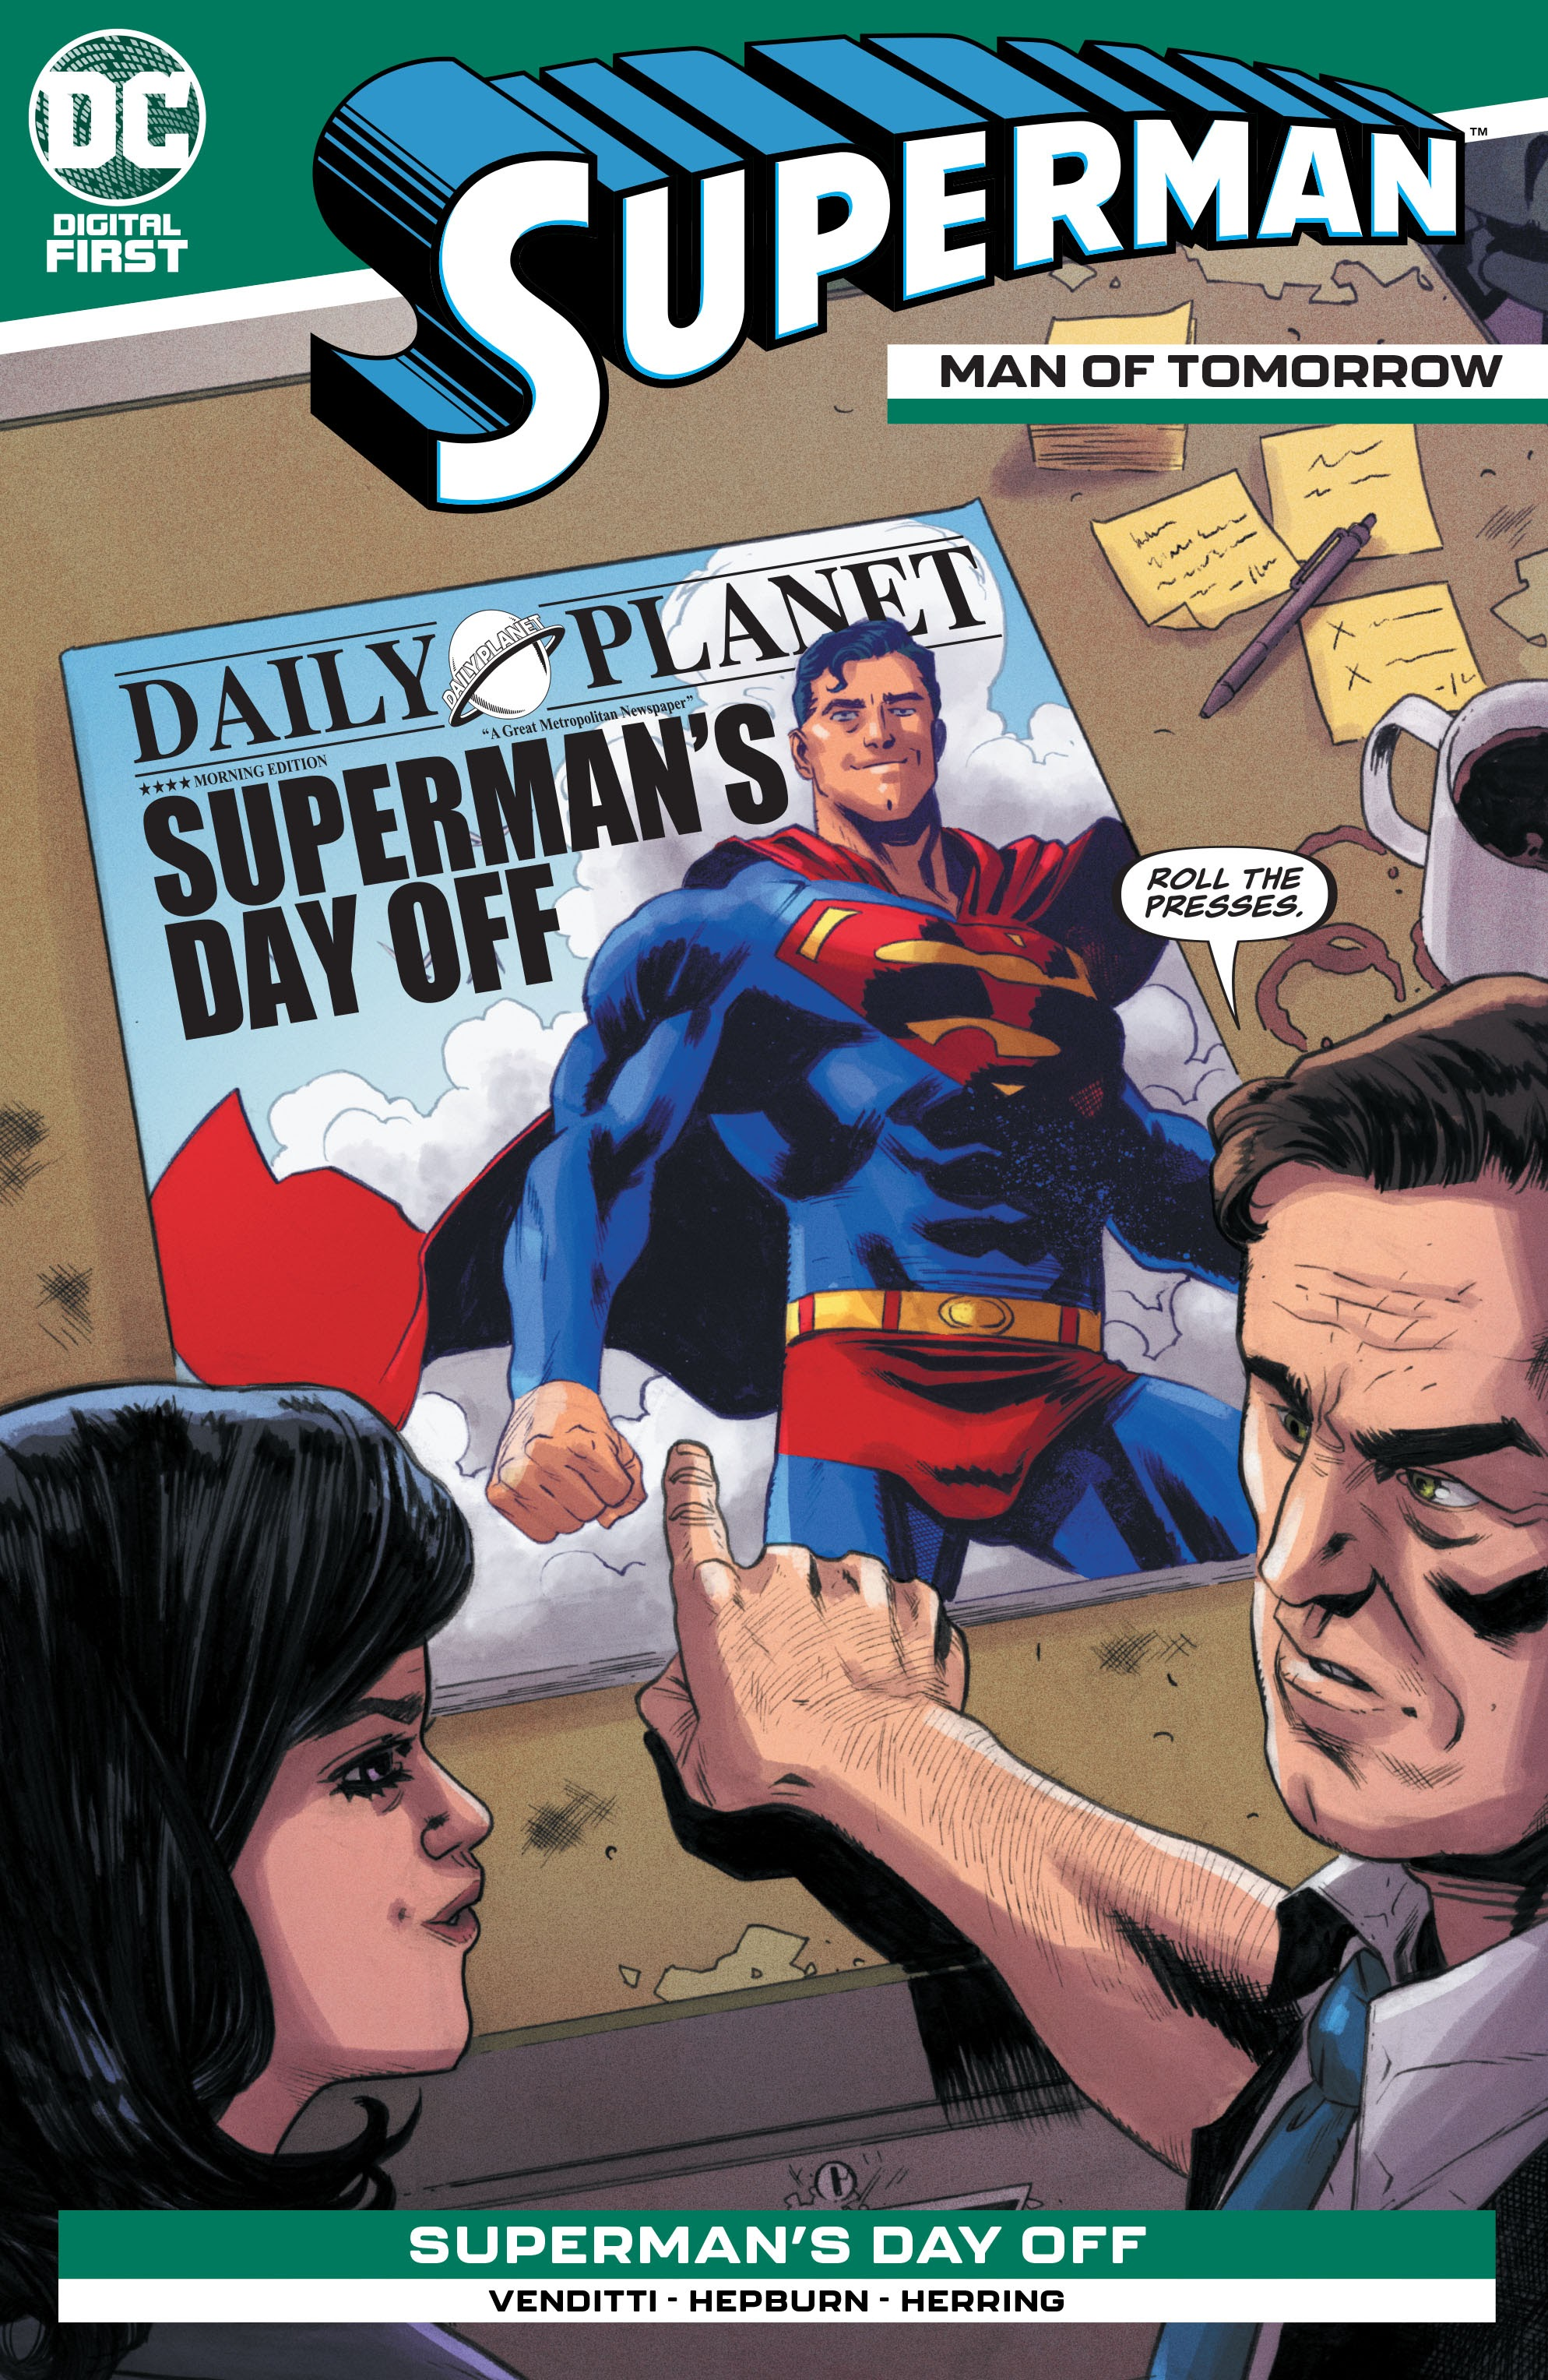 Superman: Man of Tomorrow Vol 1 12 (Digital)